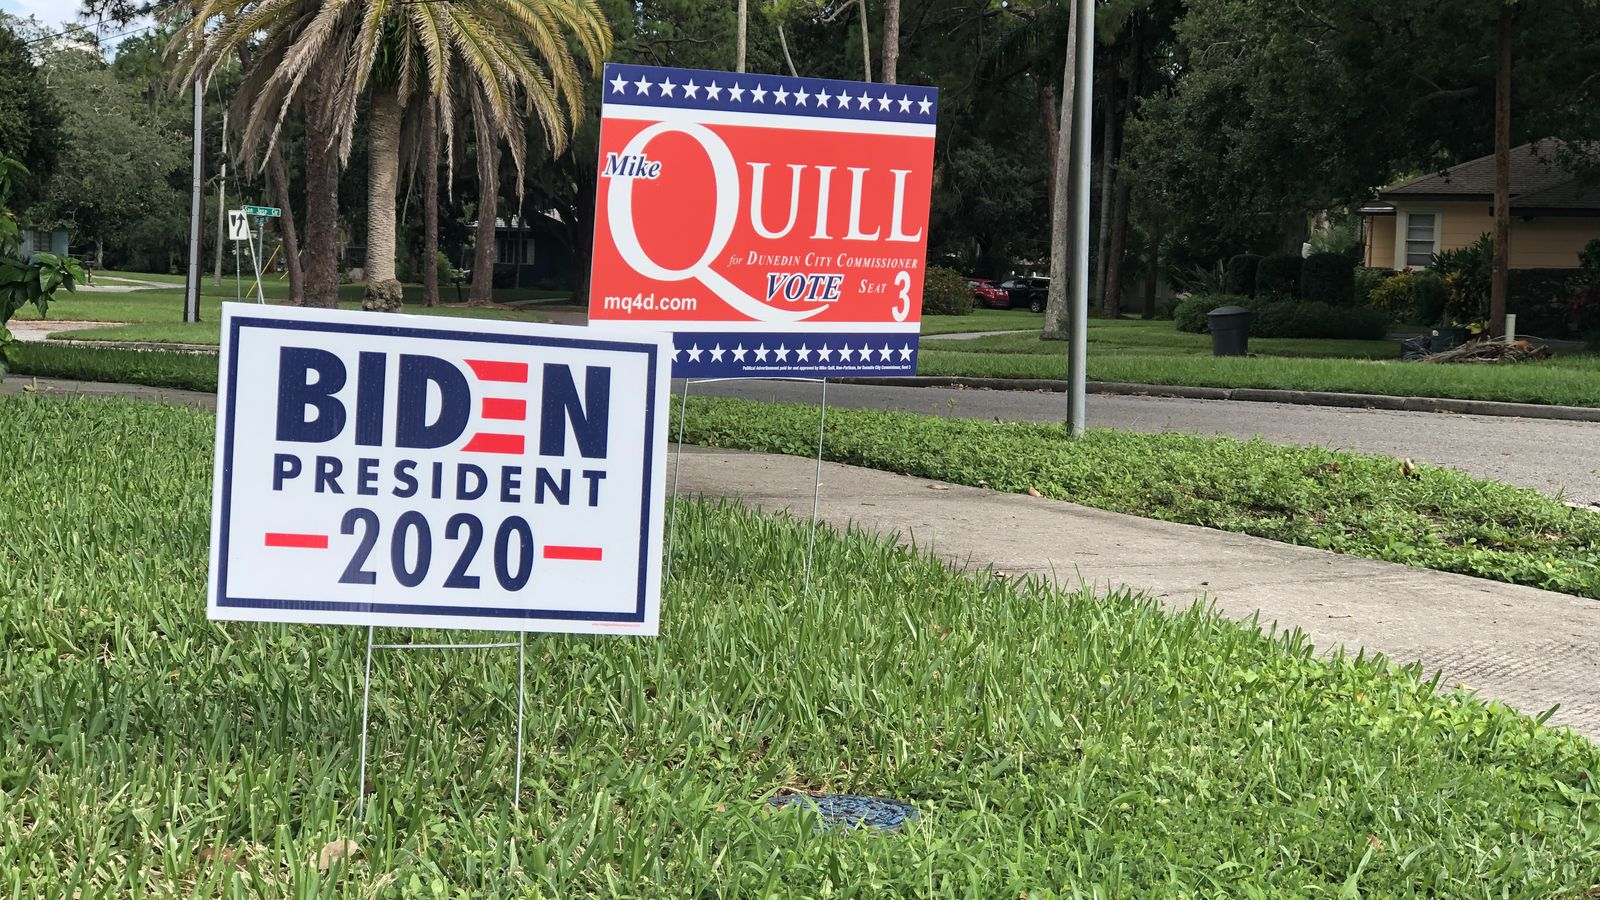 Stealing Political Yard Signs Is